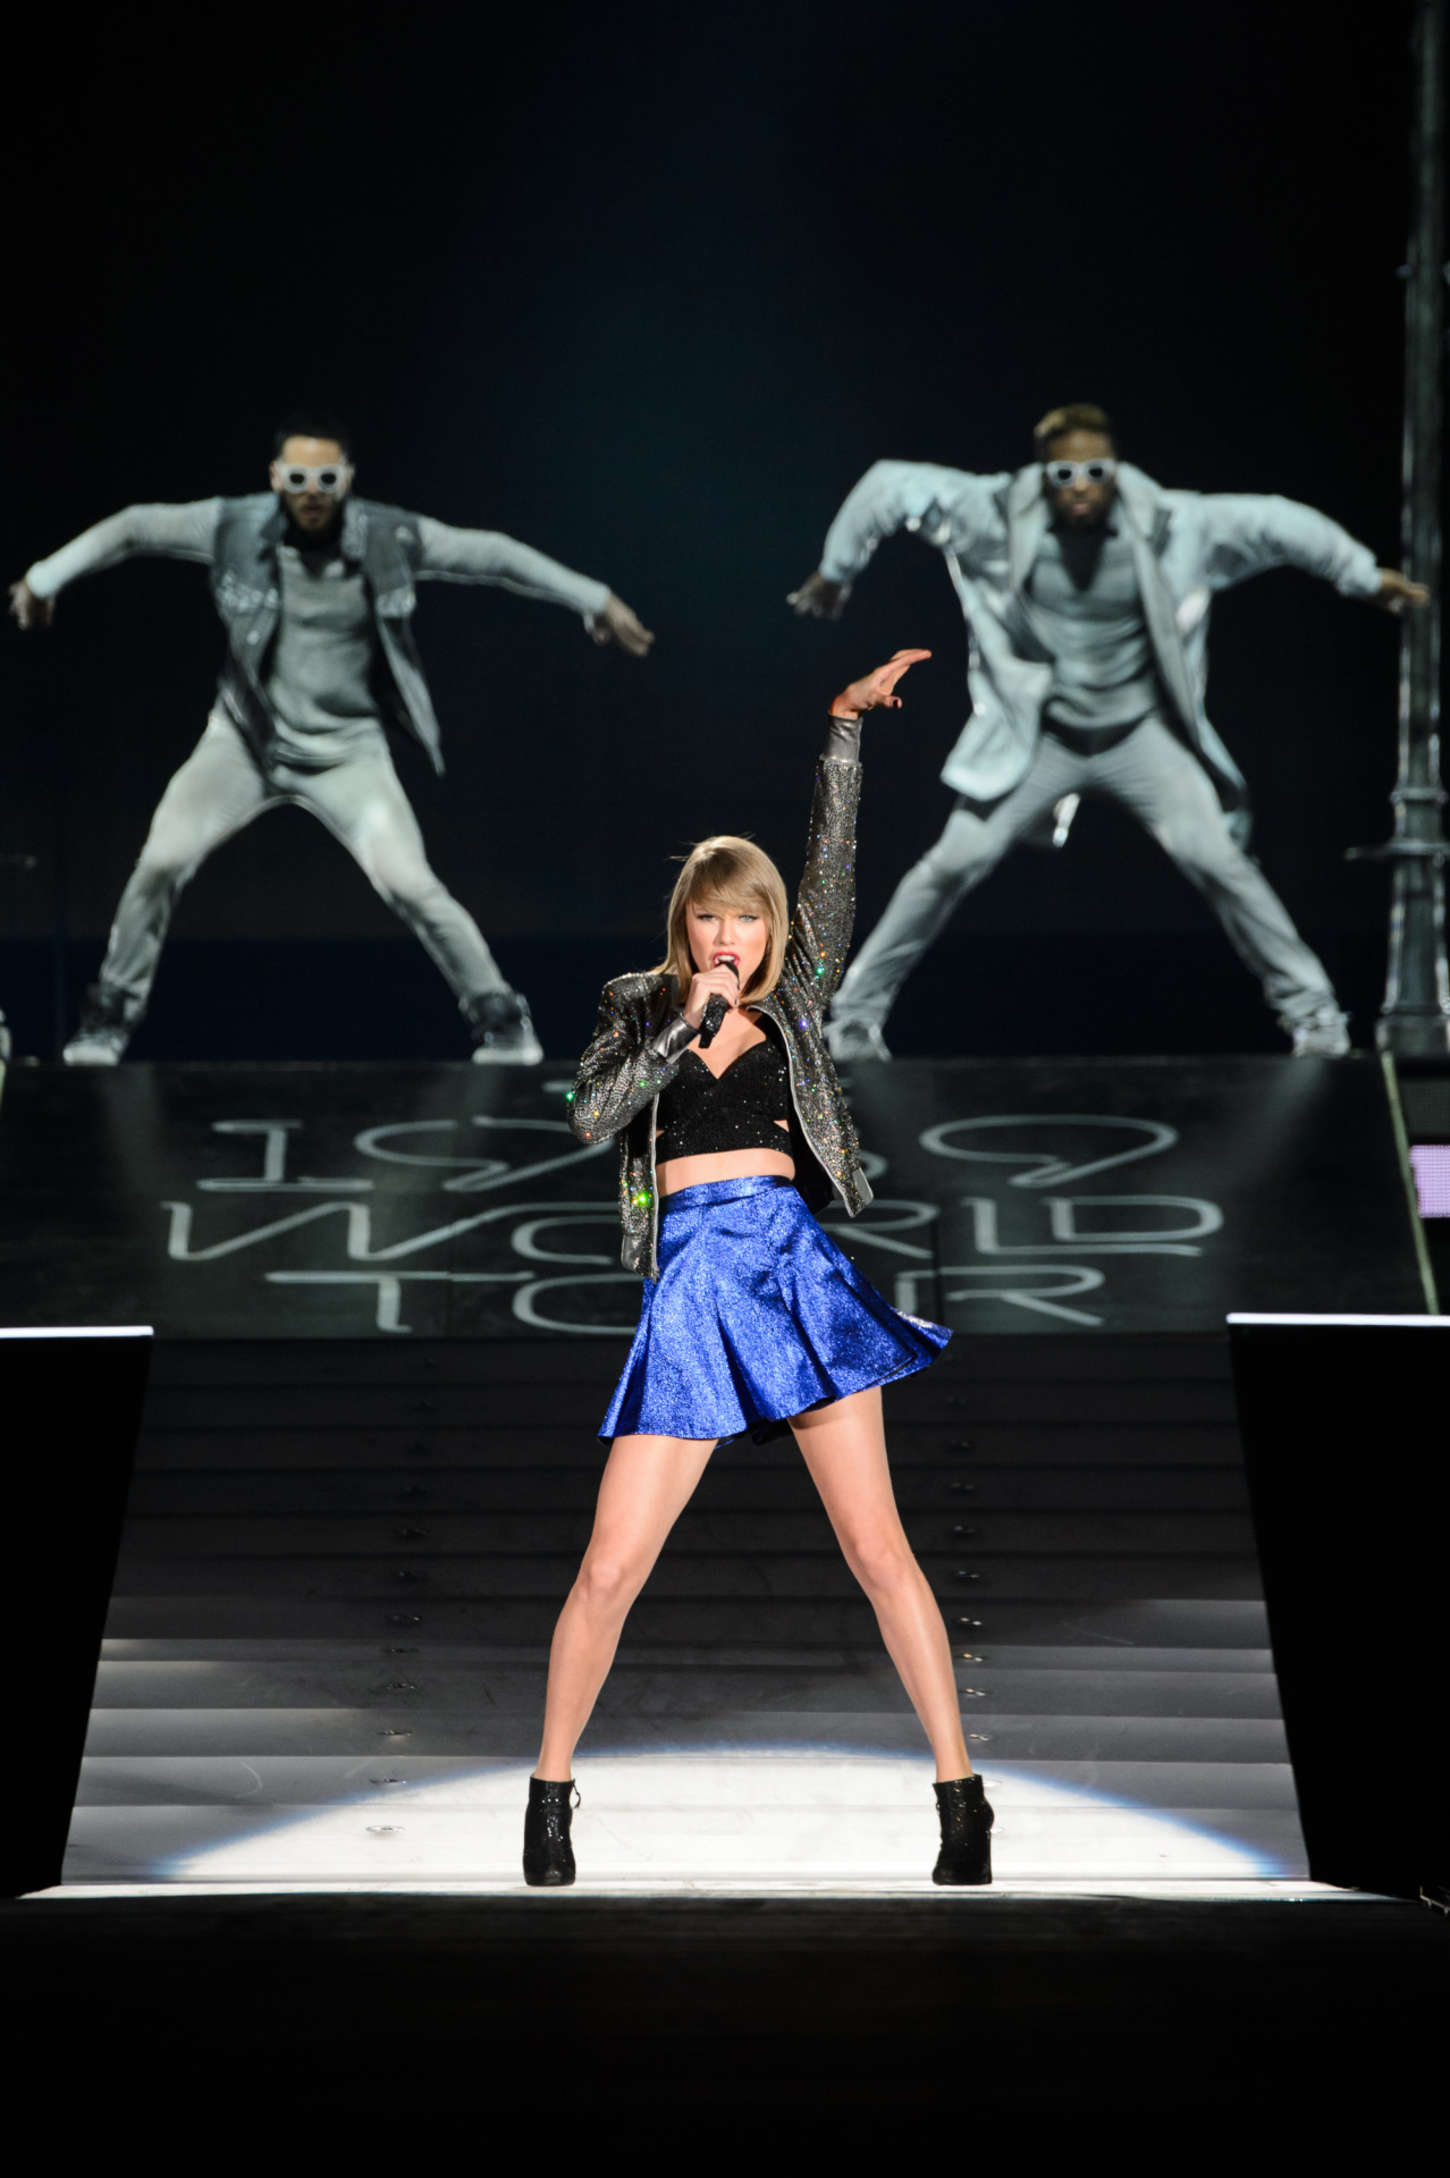 1989 world tour in detroit taylor swift performs in detroit 02